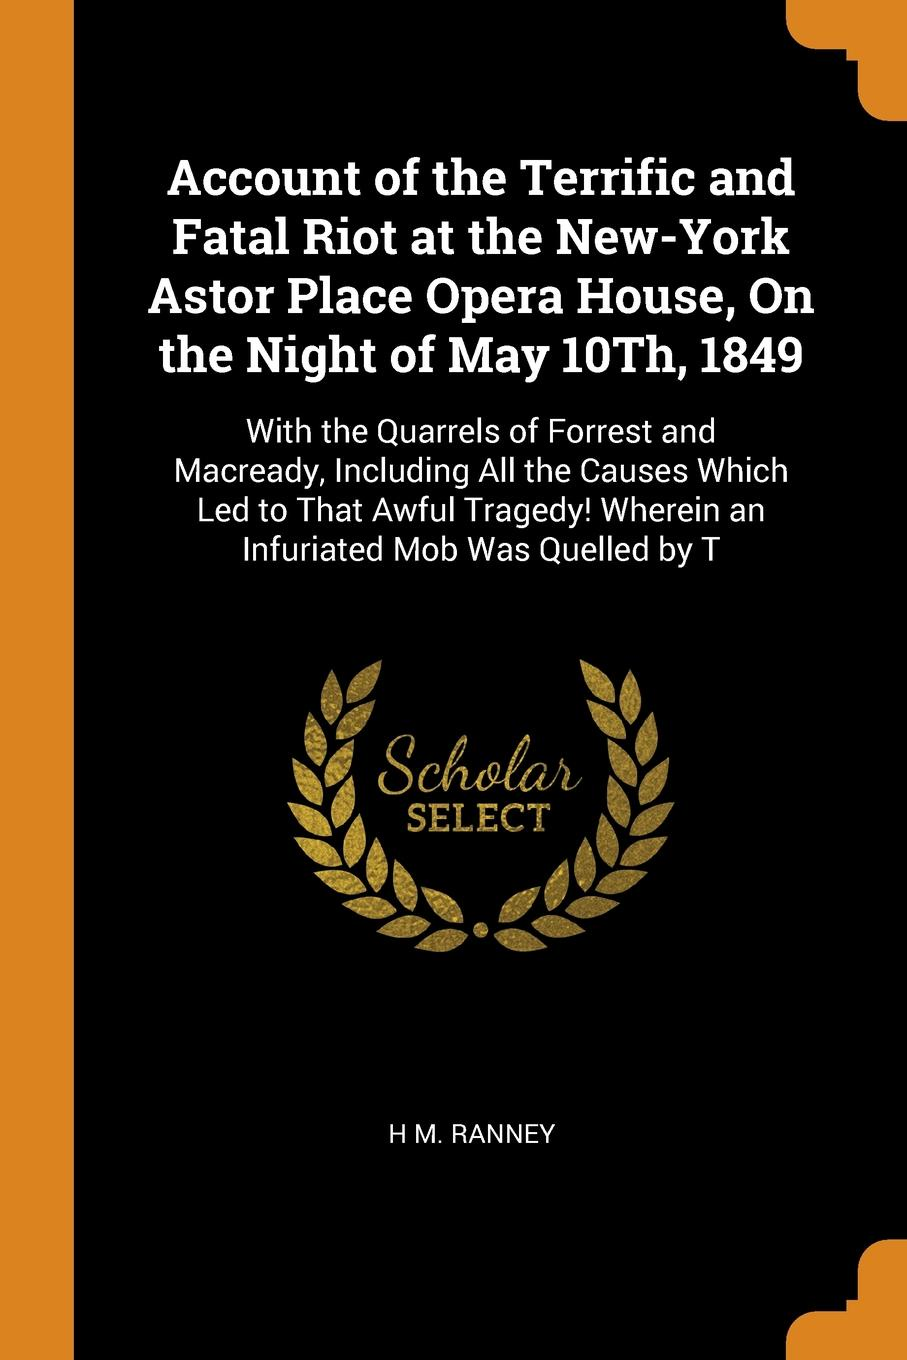 Account of the Terrific and Fatal Riot at the New-York Astor Place Opera House, On the Night of May 10Th, 1849. With the Quarrels of Forrest and Macready, Including All the Causes Which Led to That Awful Tragedy! Wherein an Infuriated Mob Was Quel...